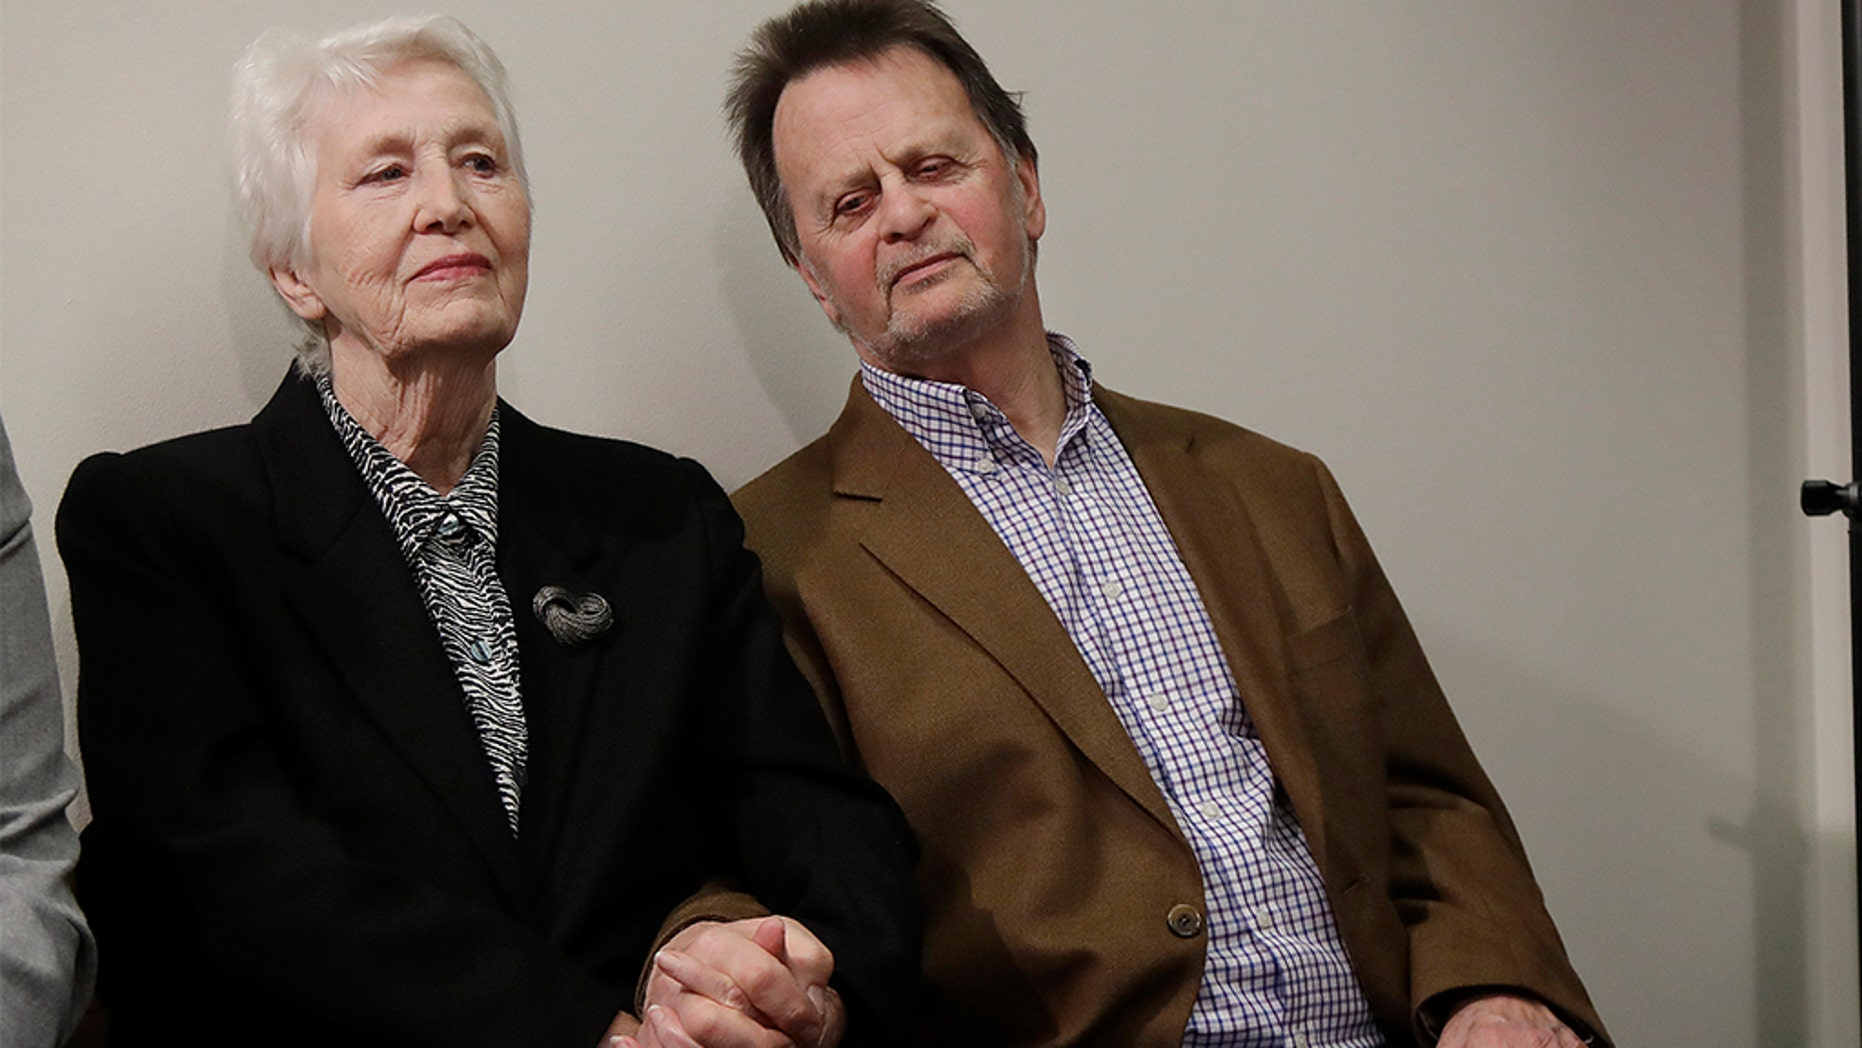 Edwin Hardeman, right, sits with his wife, Mary, at a news conference in San Francisco, Wednesday. (AP Photo/Jeff Chiu)